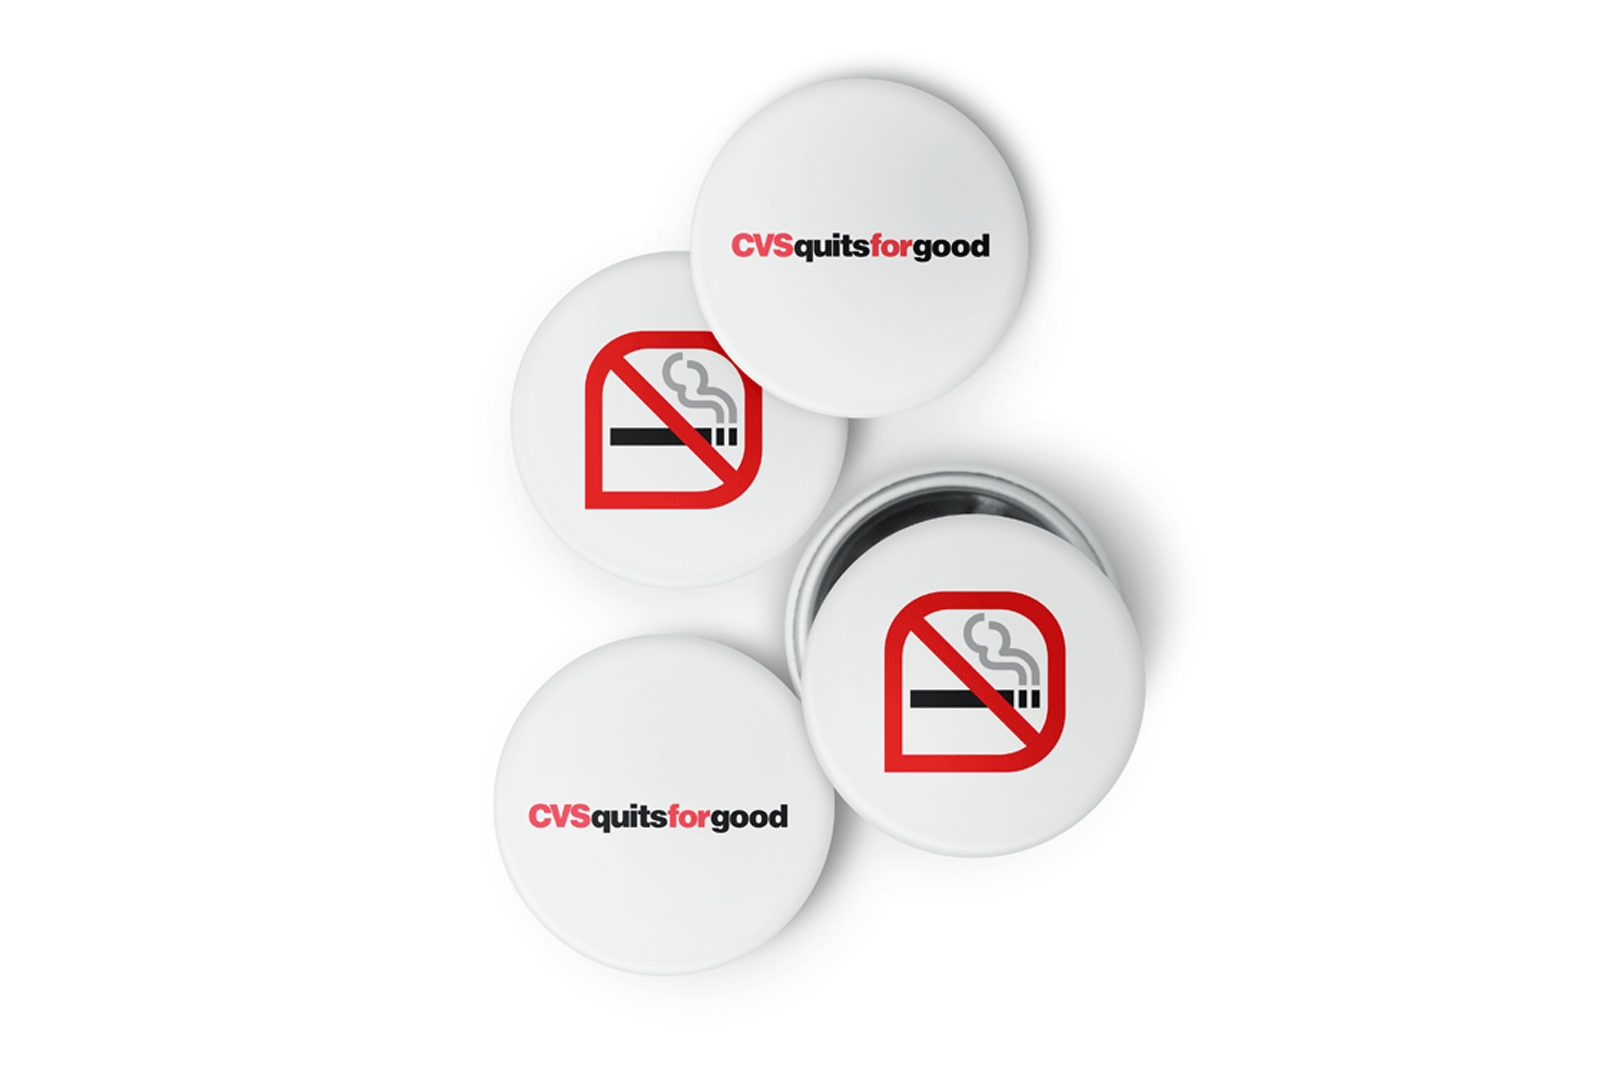 buttons with CVS quits for good slogan and anti-tobacco logos